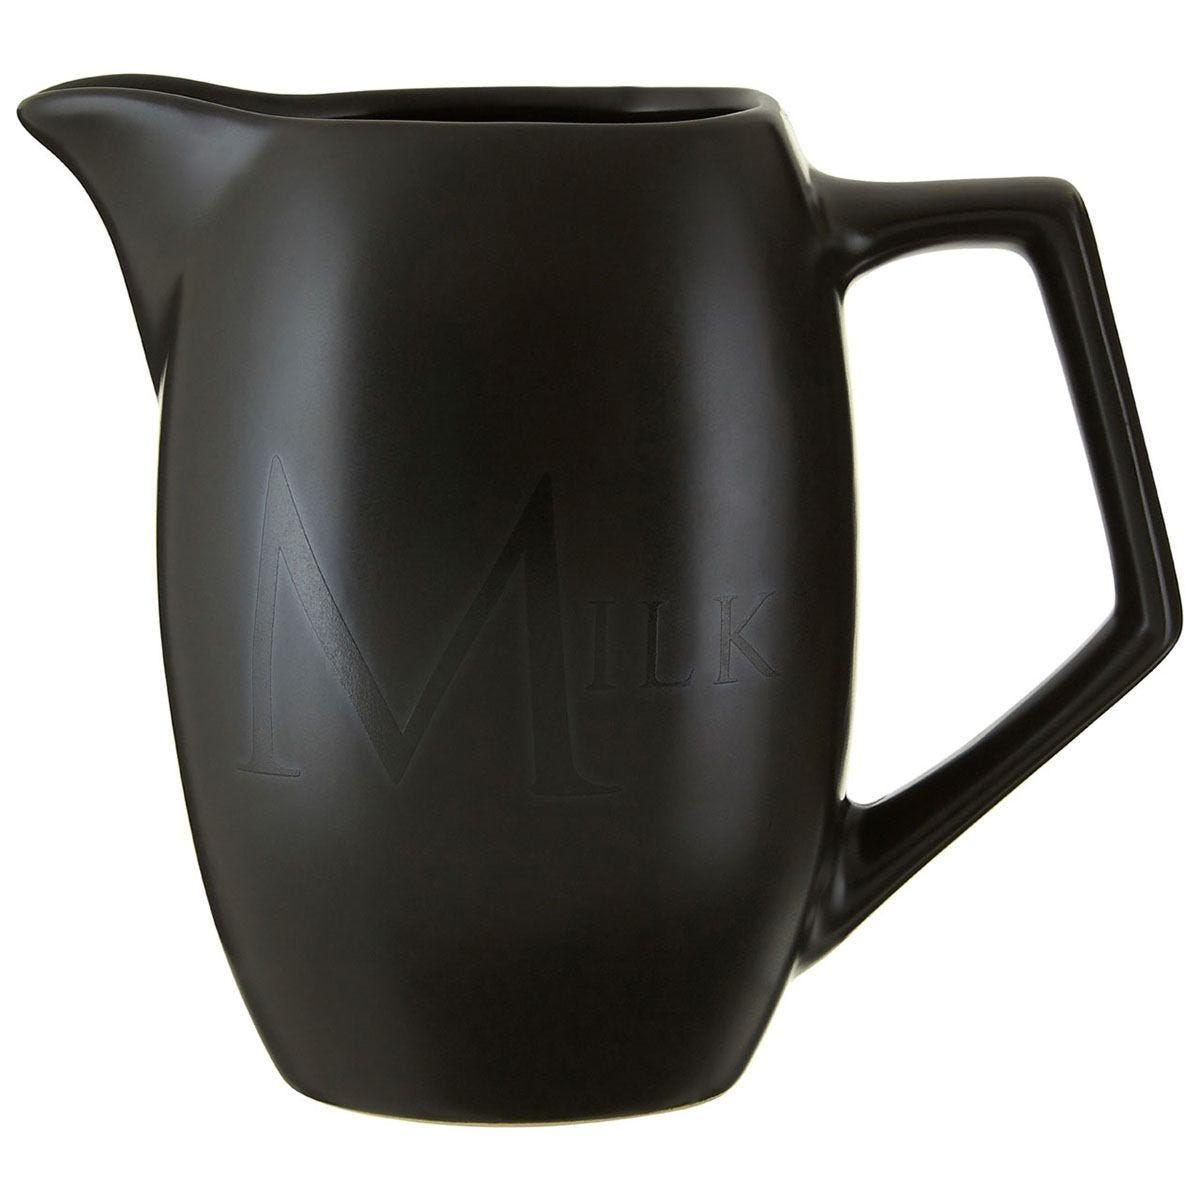 Premier Housewares Ceramic Milk Jug - Black